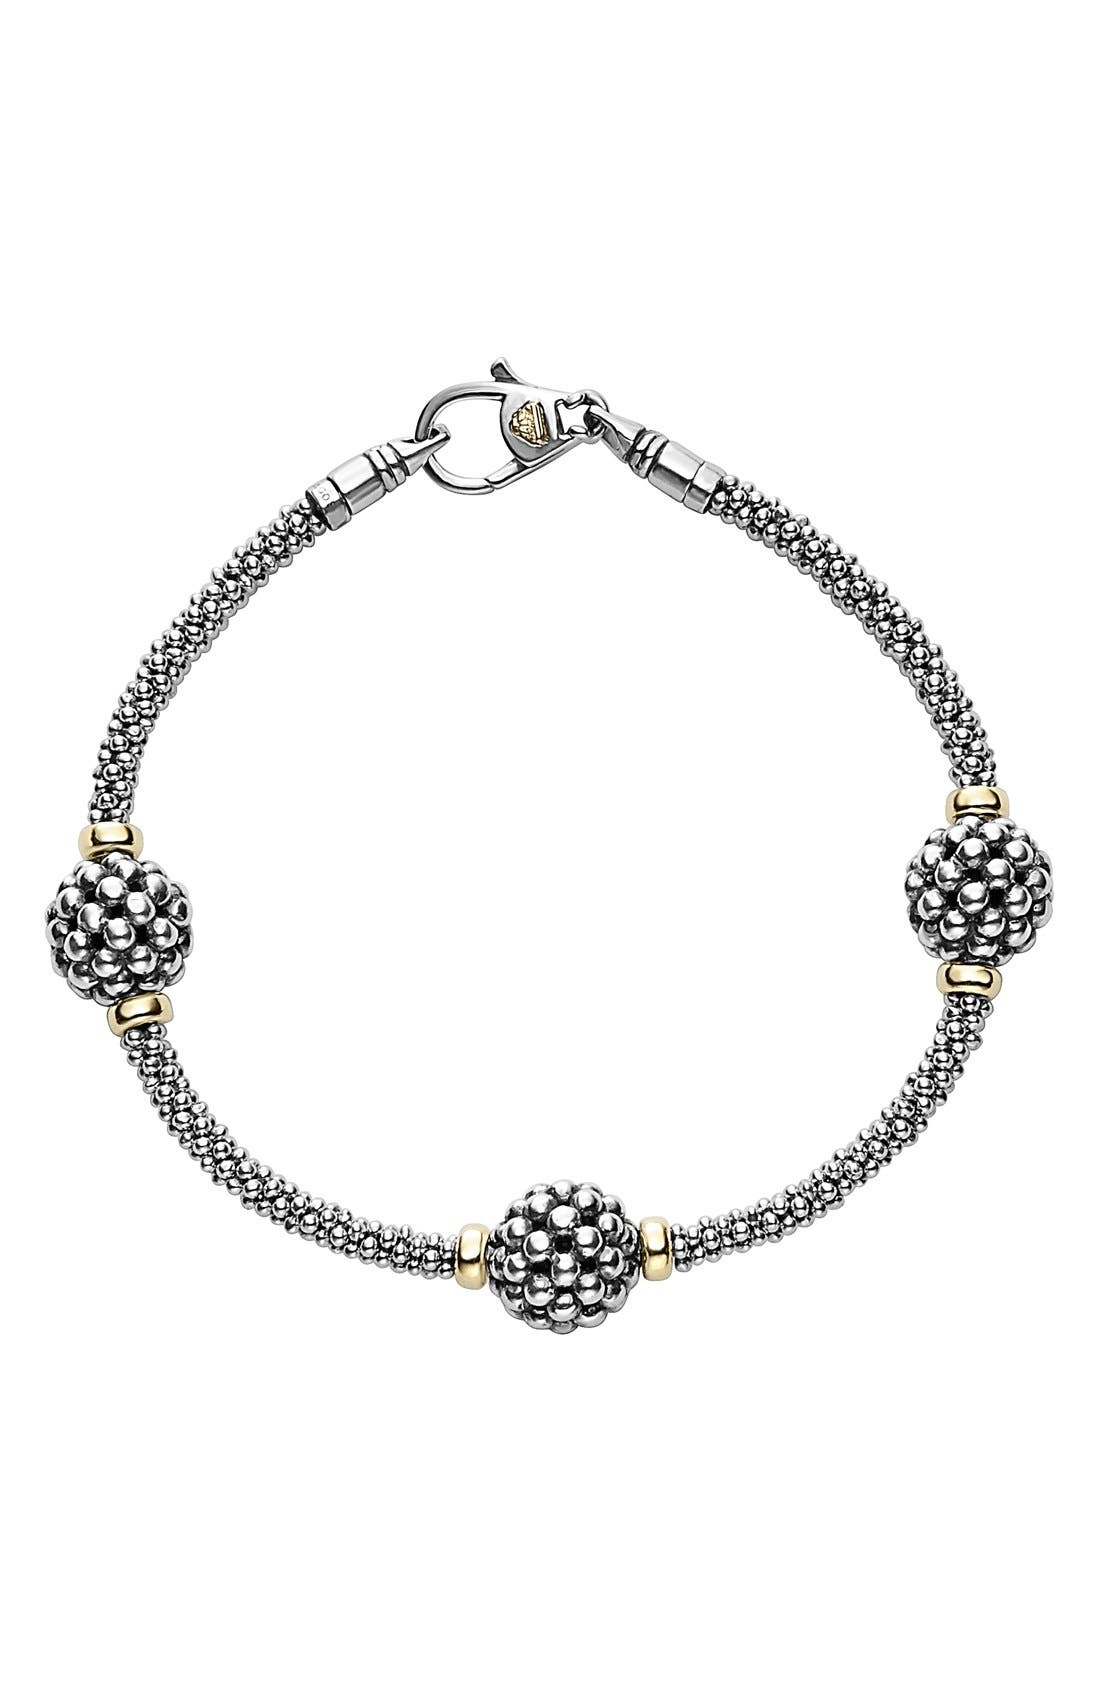 'Caviar Forever' Ball Station Bracelet,                             Main thumbnail 1, color,                             SILVER/ GOLD